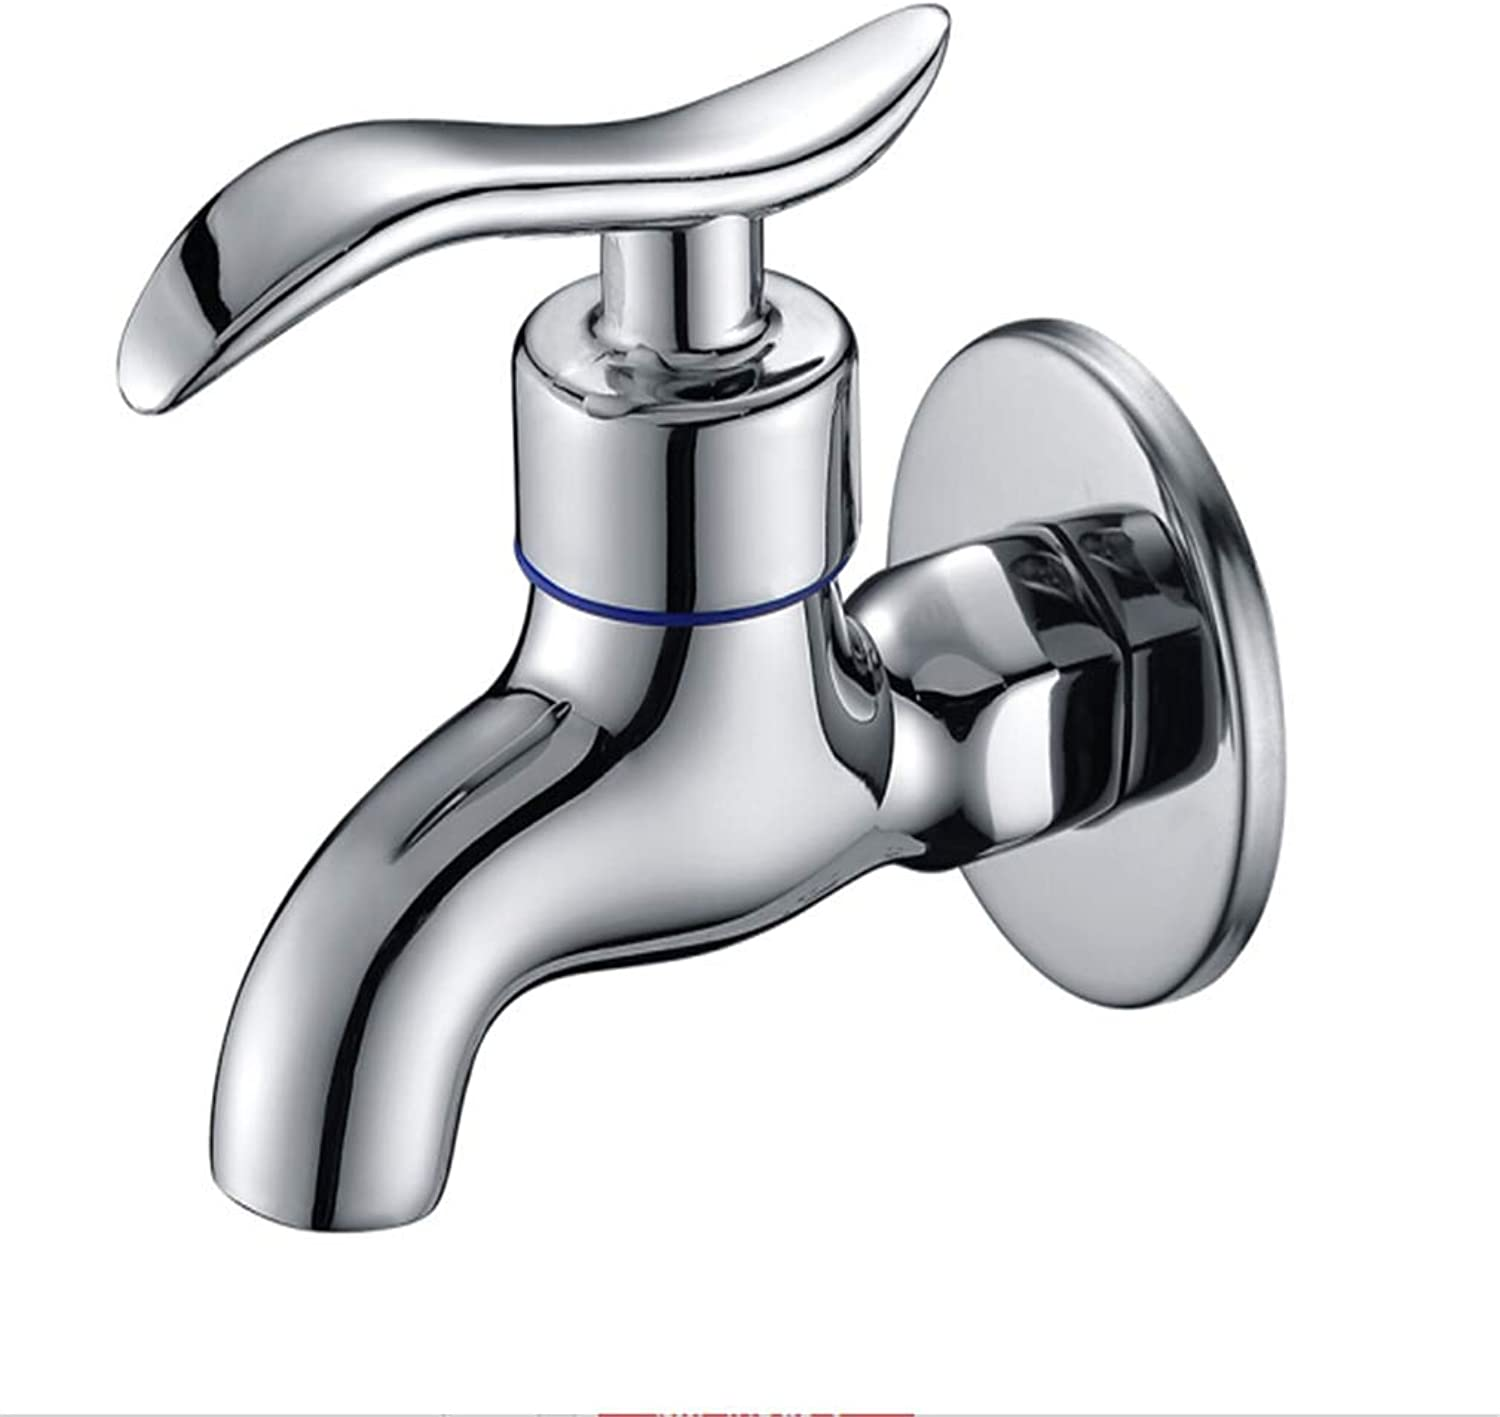 Kitchen Taps Faucet Modern Kitchen Sink Taps Stainless Steelcopper Mop Pool Faucet Single Cold Quick Boiling Nozzle Ceramic Disc Valve Core